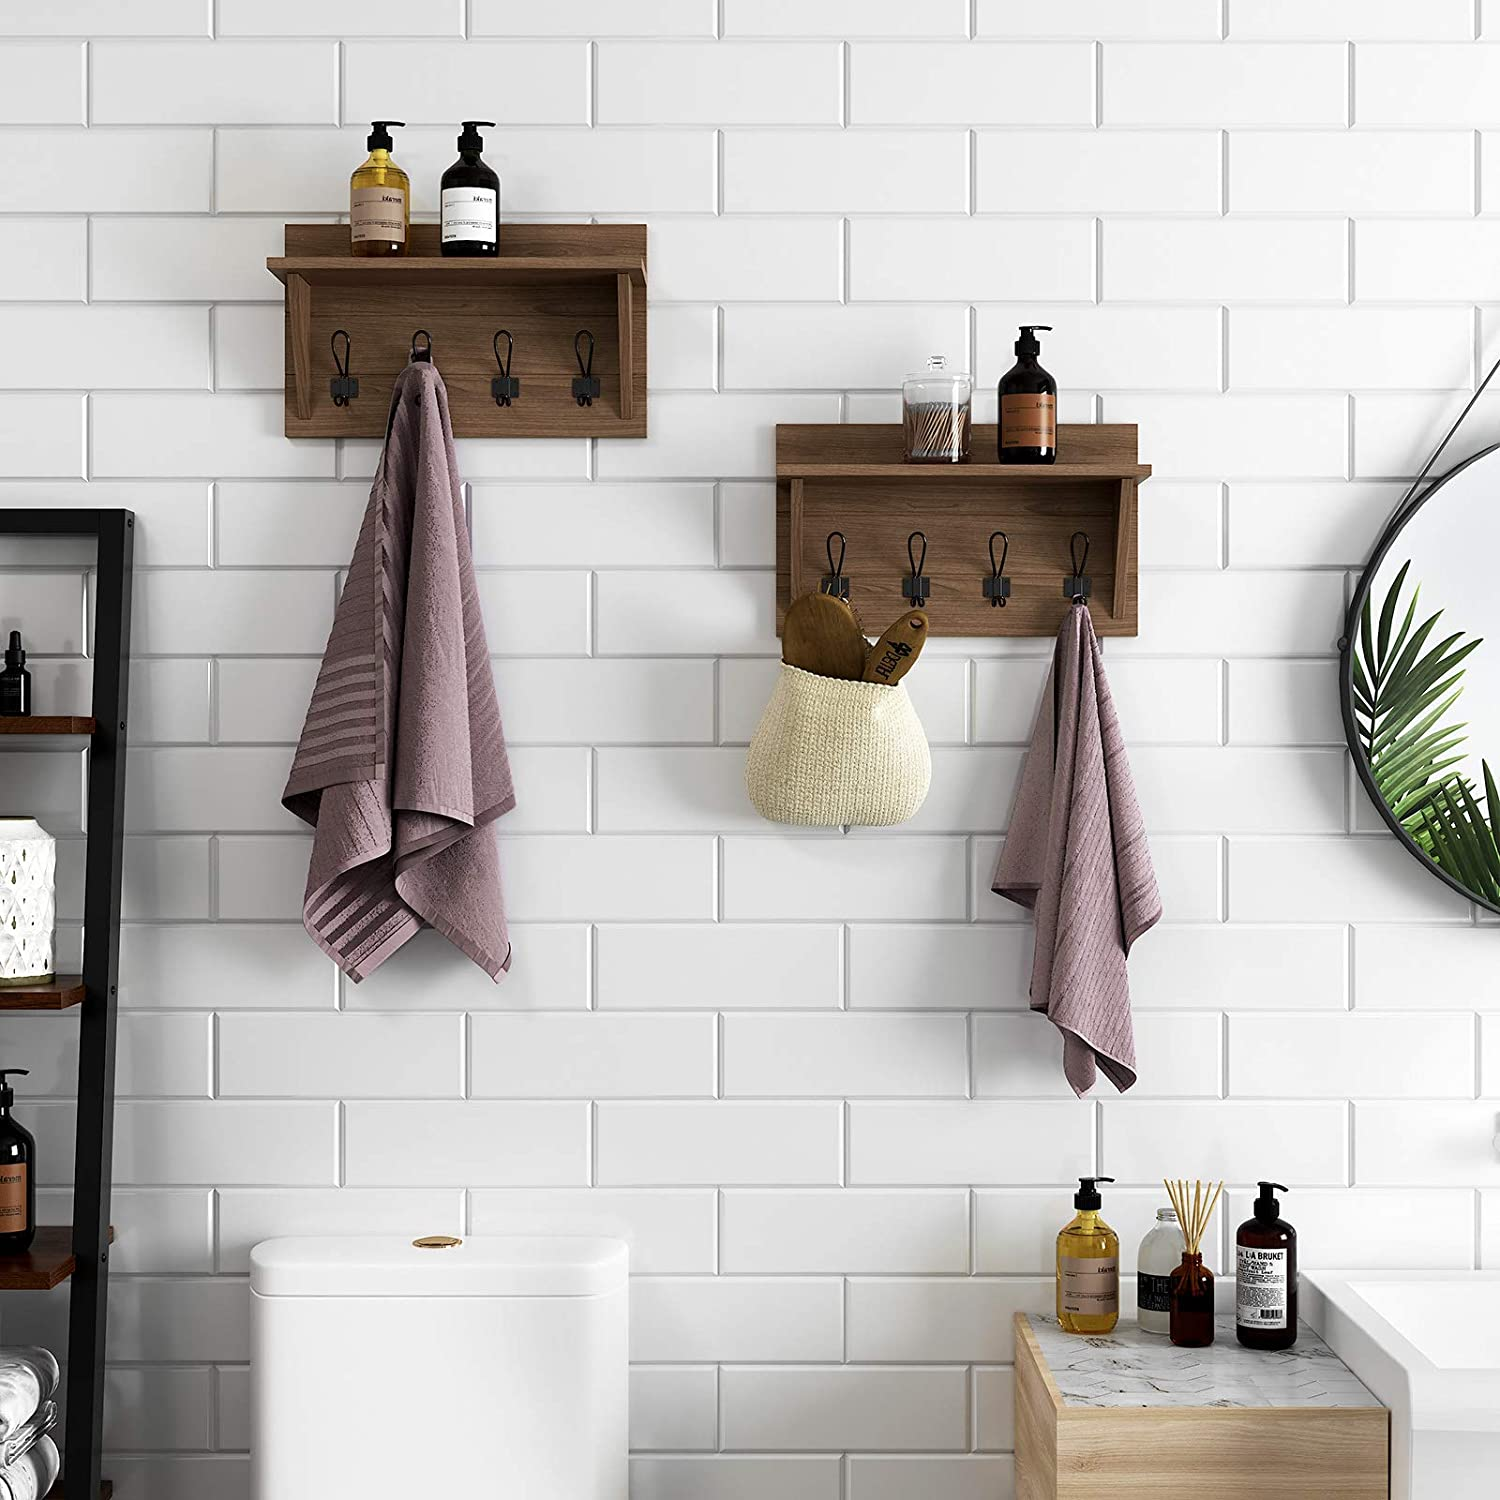 Amazon.com: VASAGLE Perchero de pared con estante, estilo ...